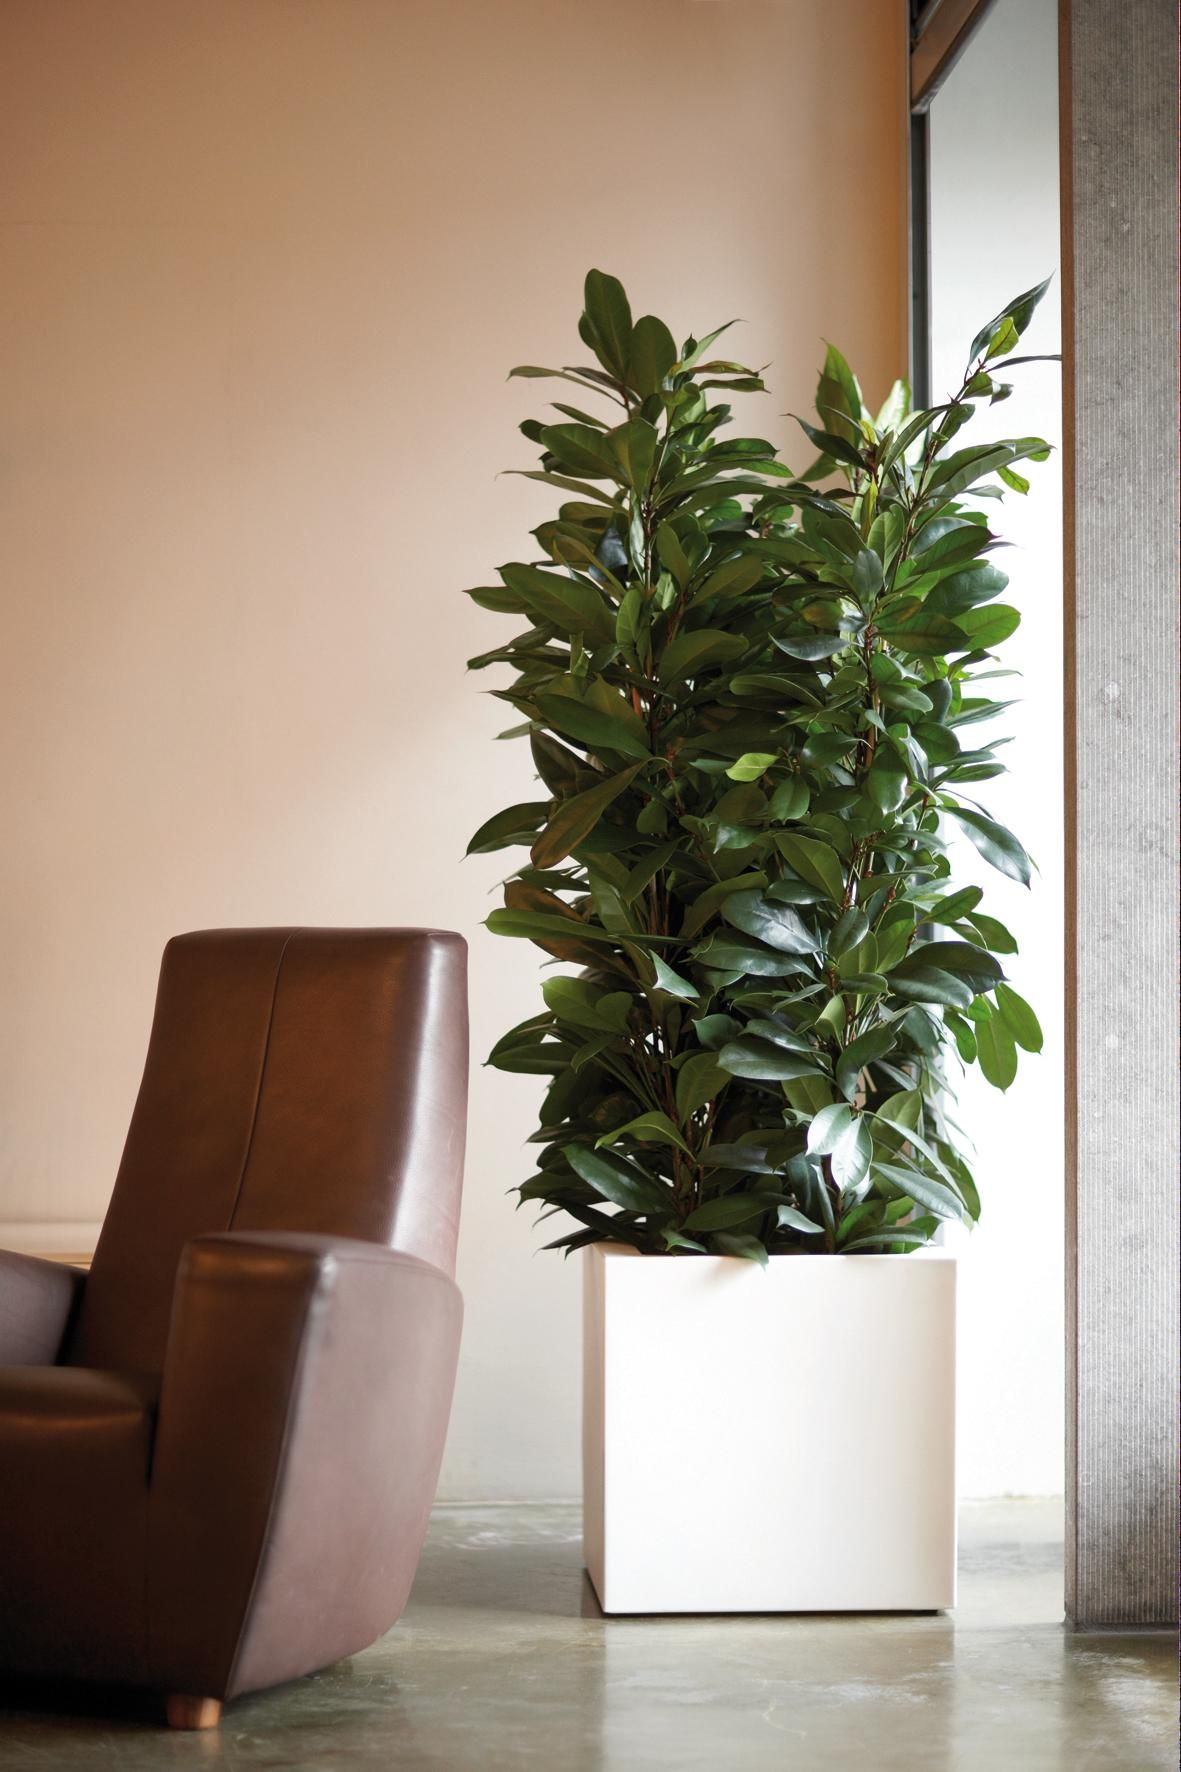 Elho Pure Square Http Www Webloom Nl Plant Decor Indoor Interior Plants